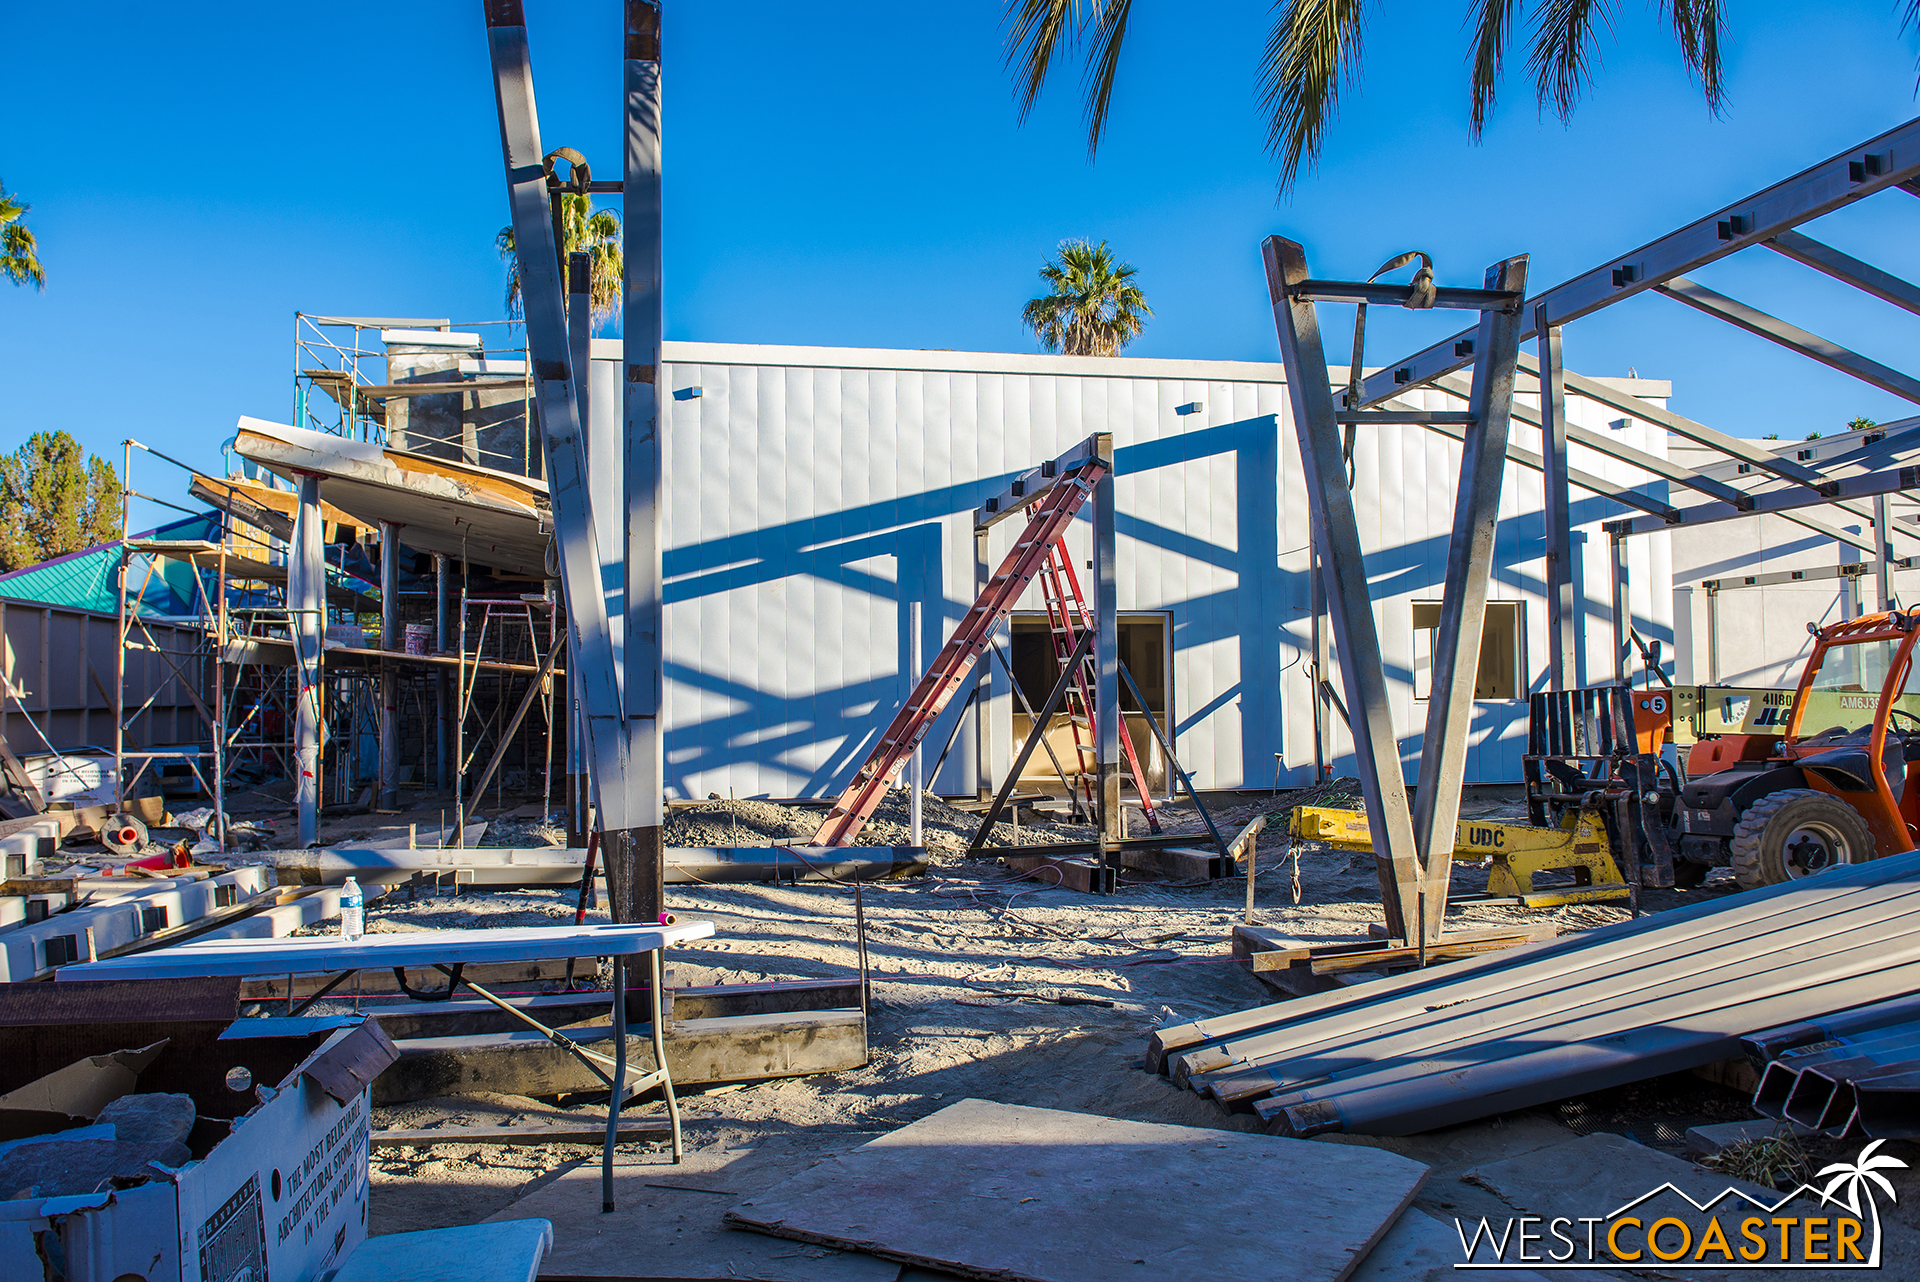 But some beams are going up, and there are classic mid-century chevron forms starting to become evident.